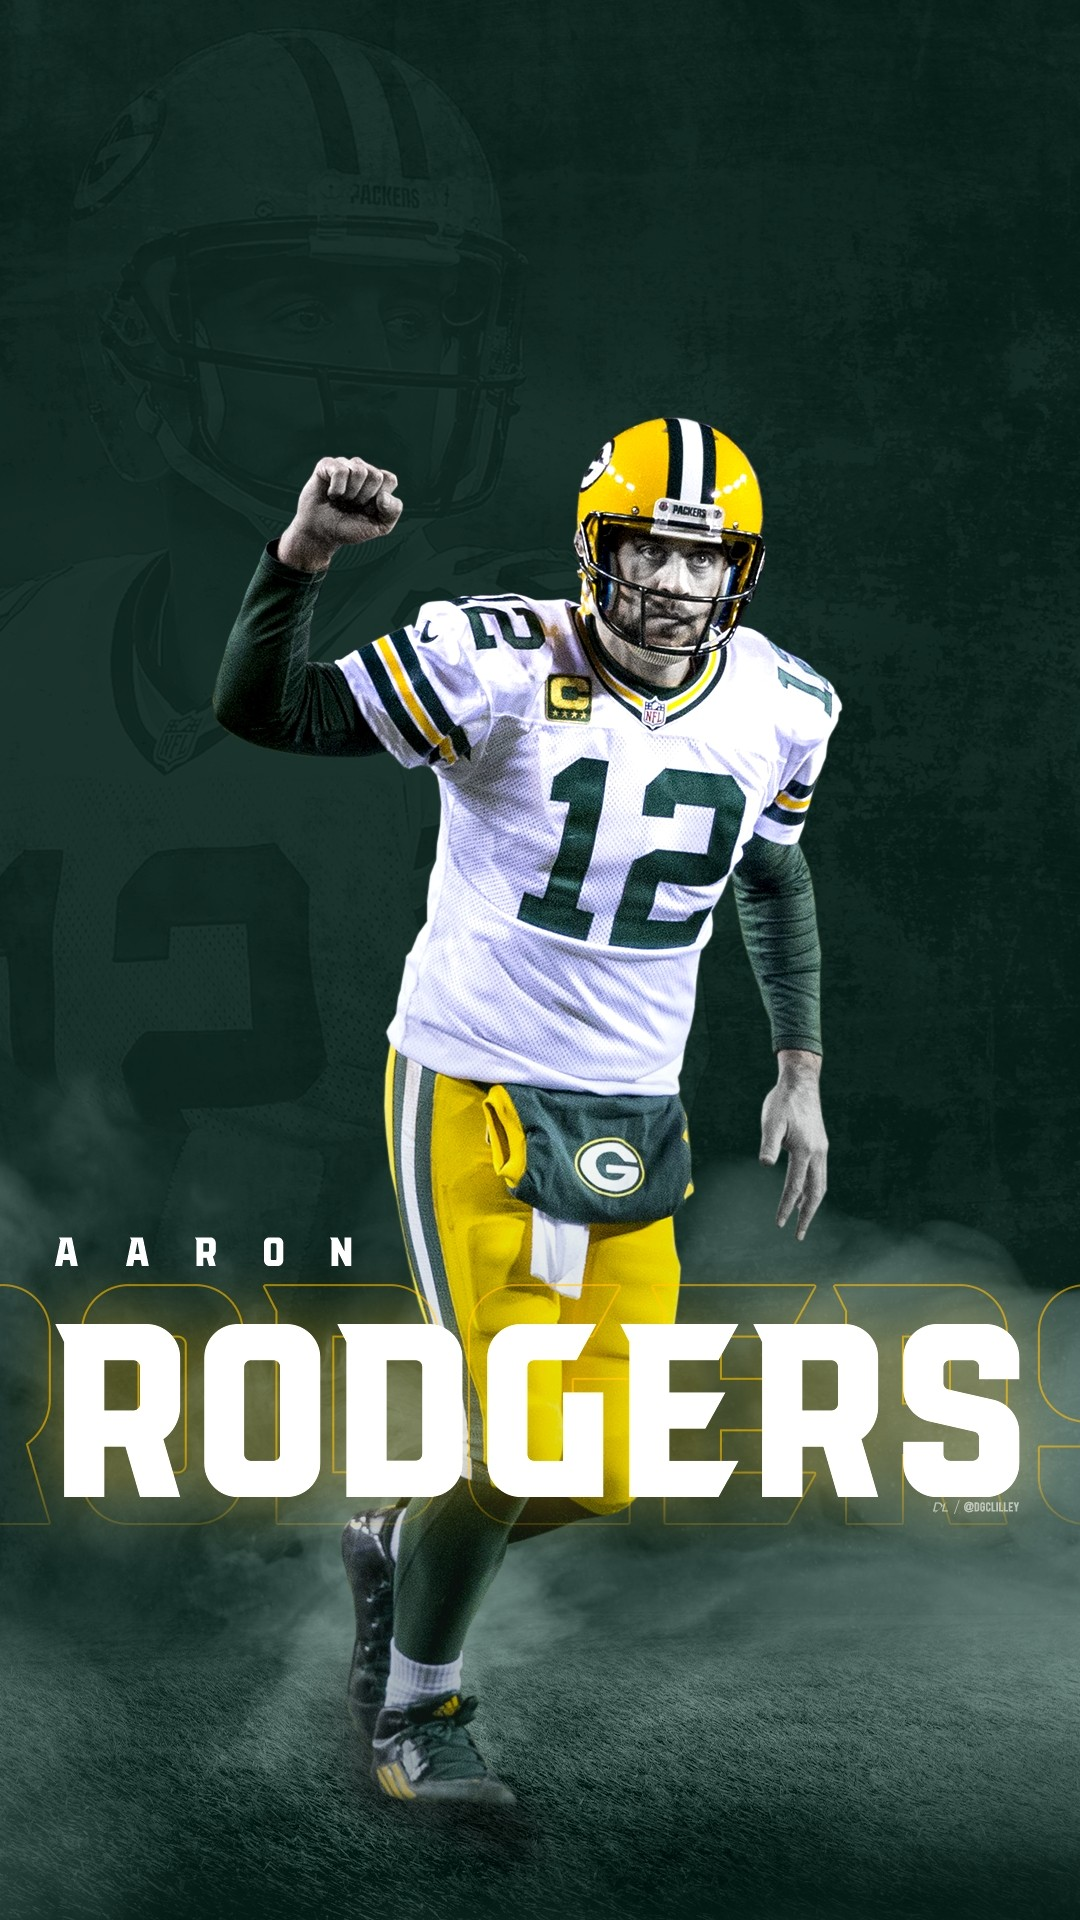 Aaron Rodgers wallpaper for android